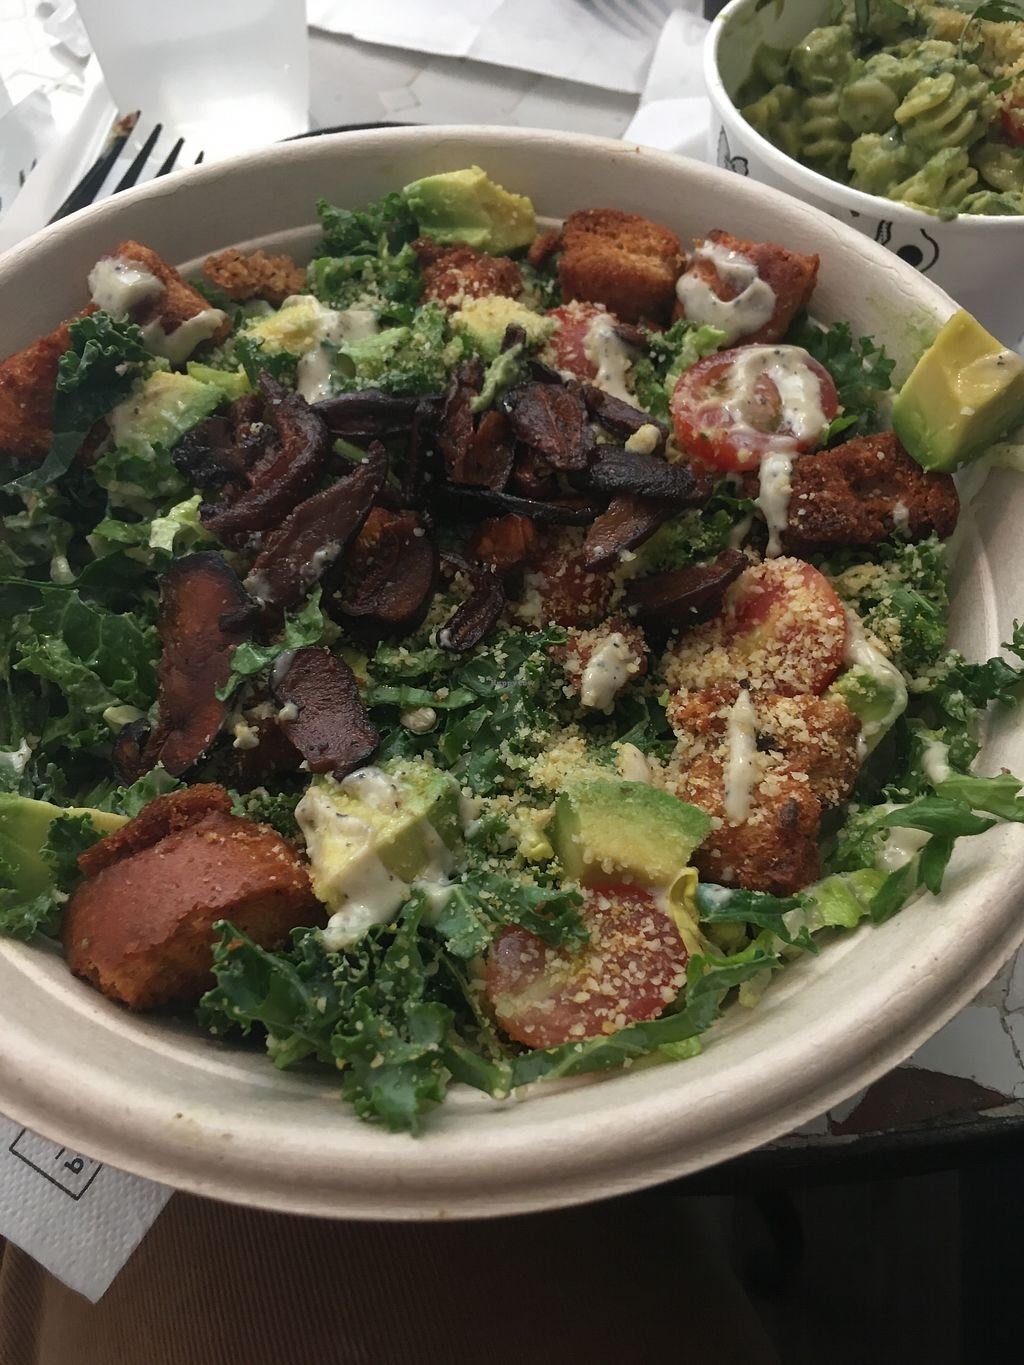 """Photo of By Chloe  by <a href=""""/members/profile/AlexandraPhillips"""">AlexandraPhillips</a> <br/>Caesar salad  <br/> July 4, 2017  - <a href='/contact/abuse/image/74813/276762'>Report</a>"""